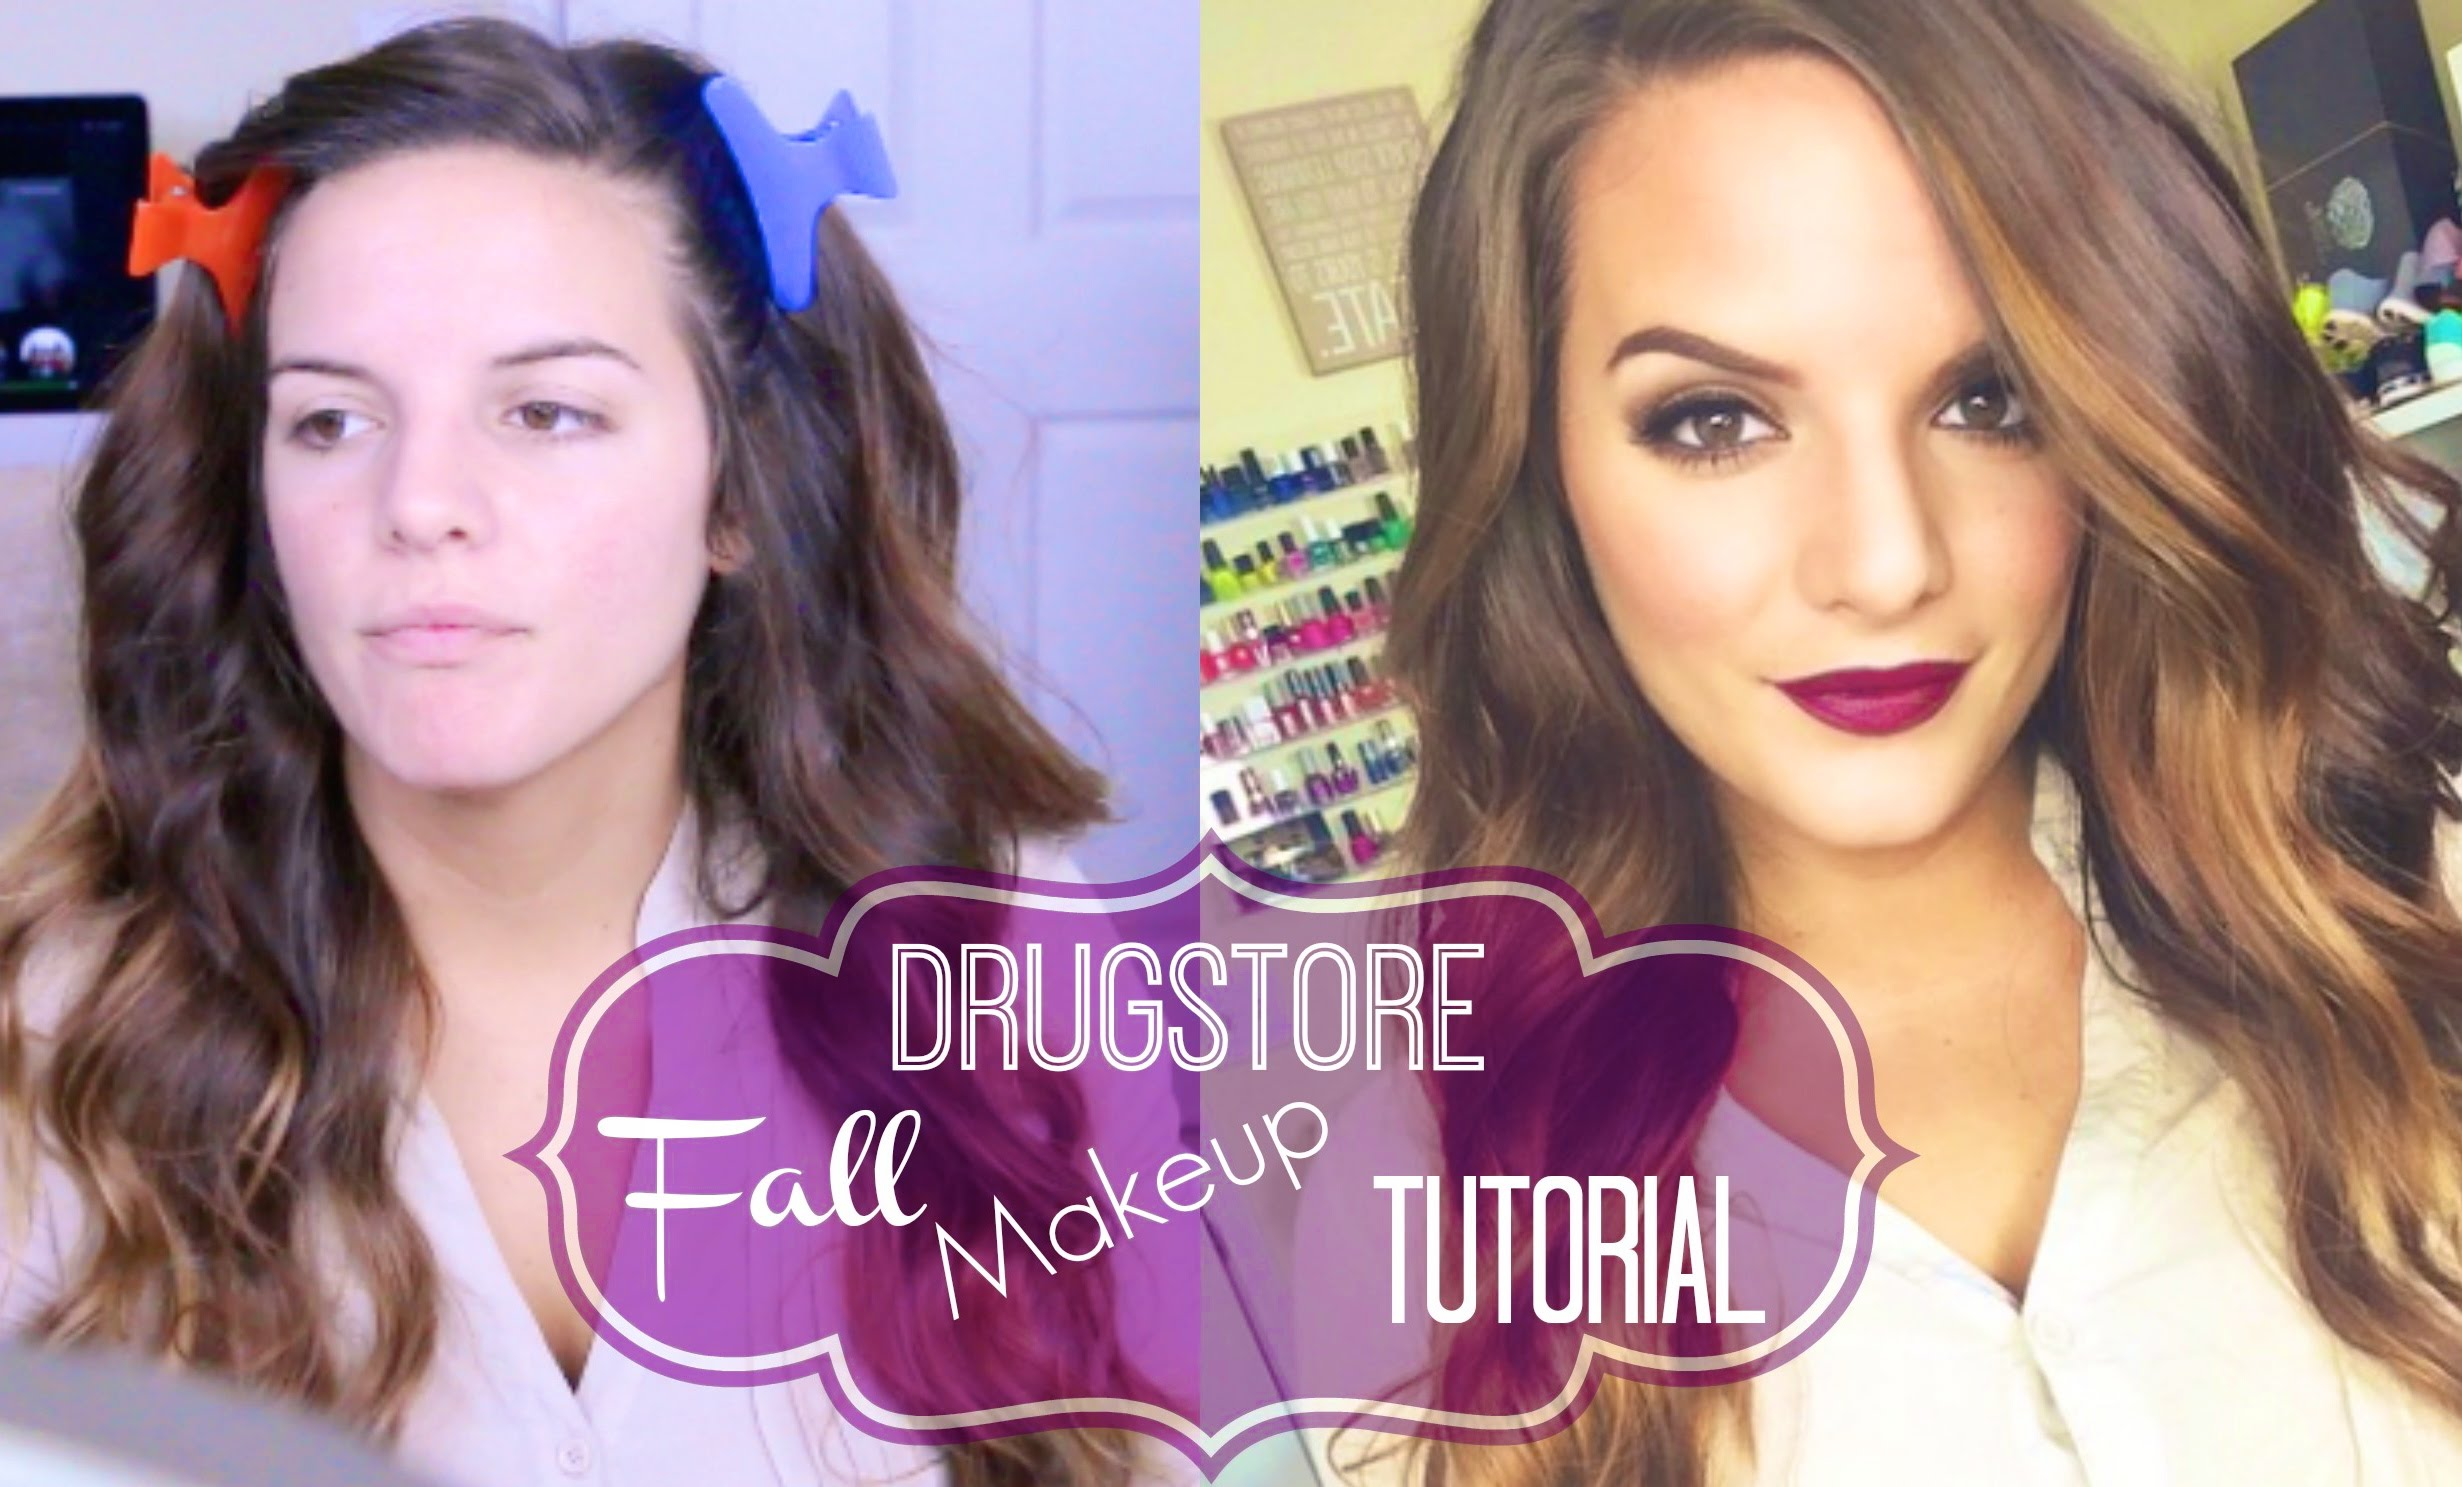 DRUGSTORE Fall Makeup Tutorial!